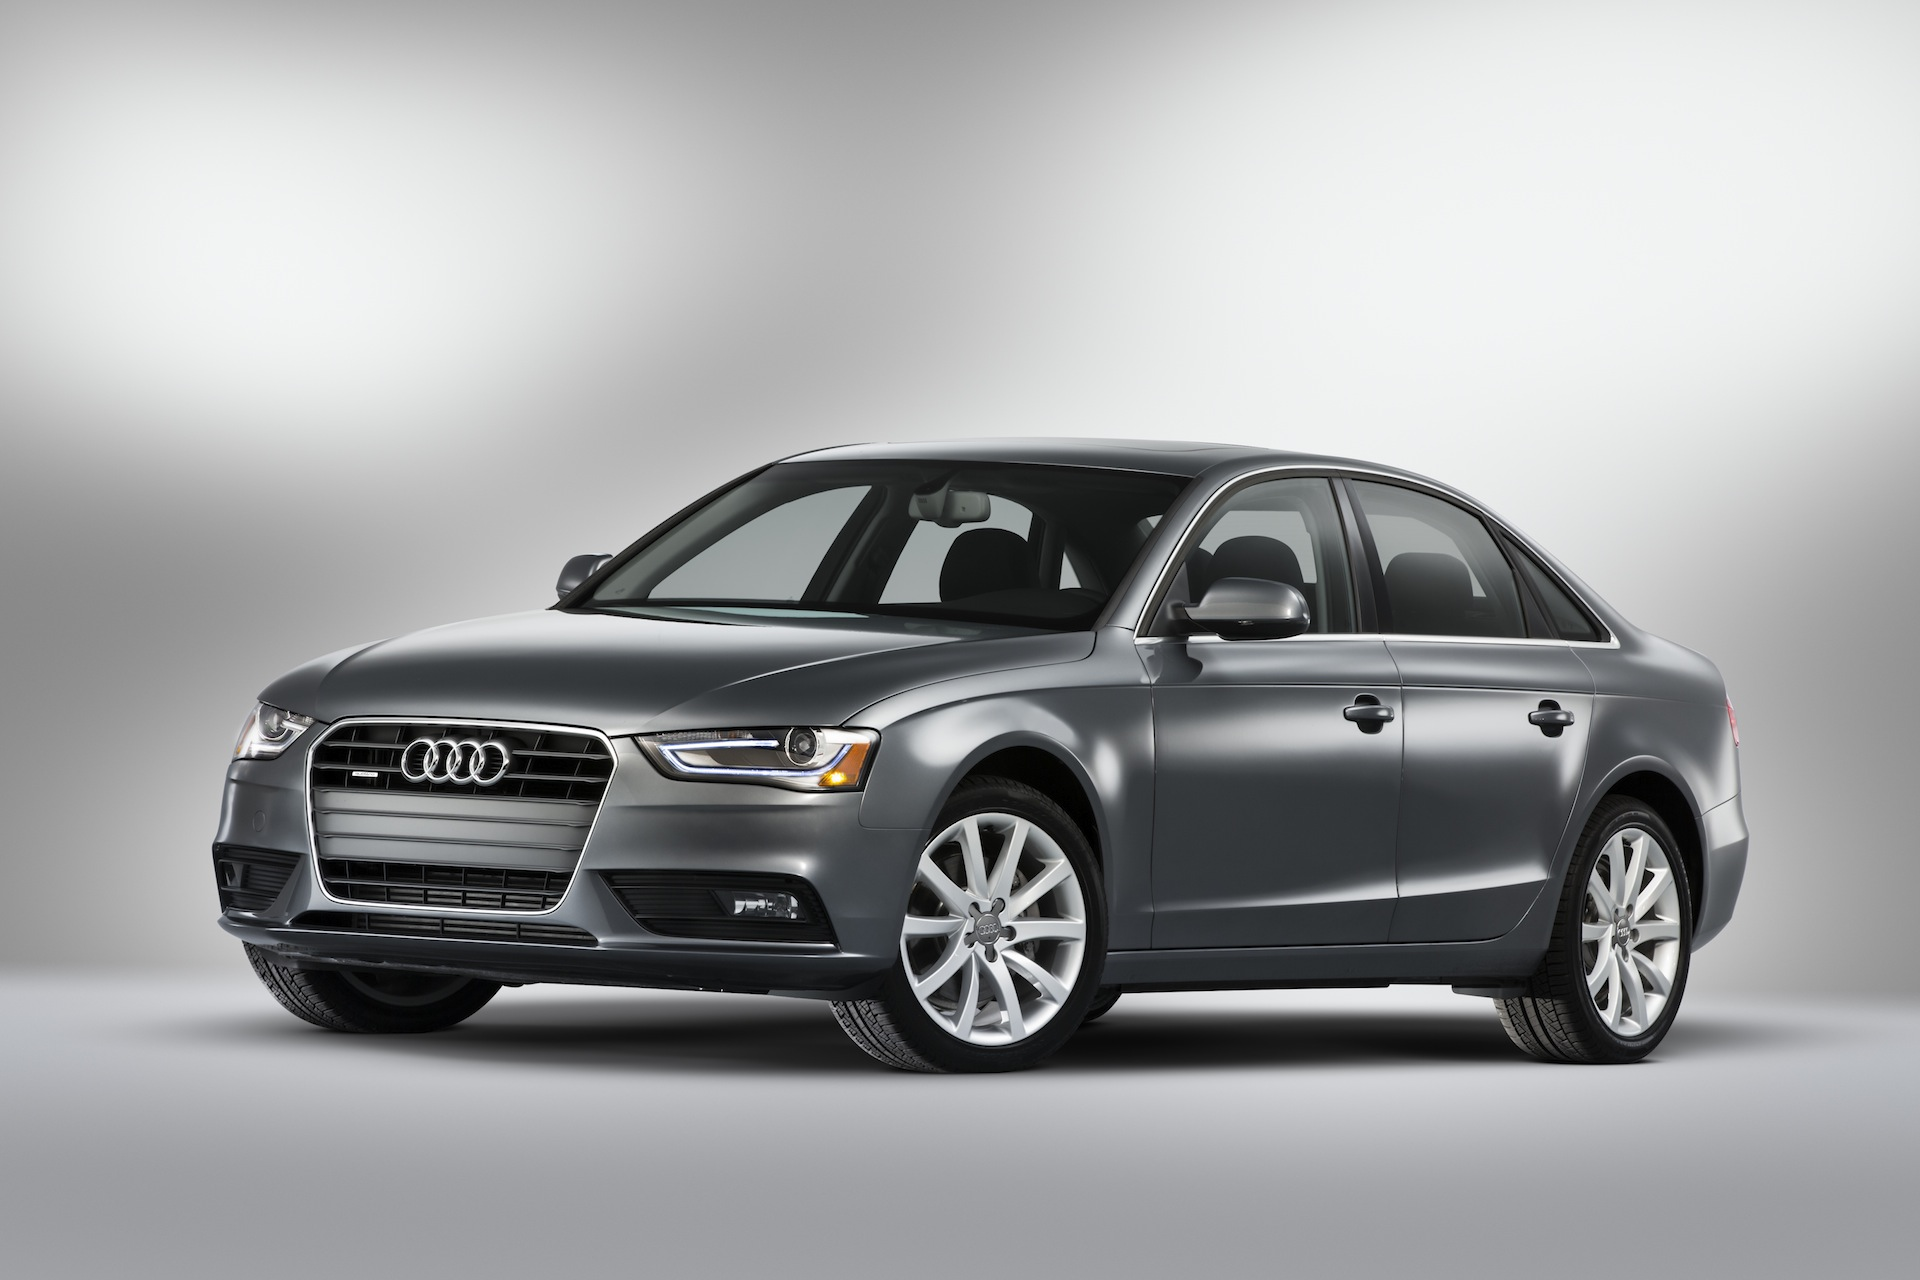 2014 Audi A4 Review Ratings Specs Prices And Photos